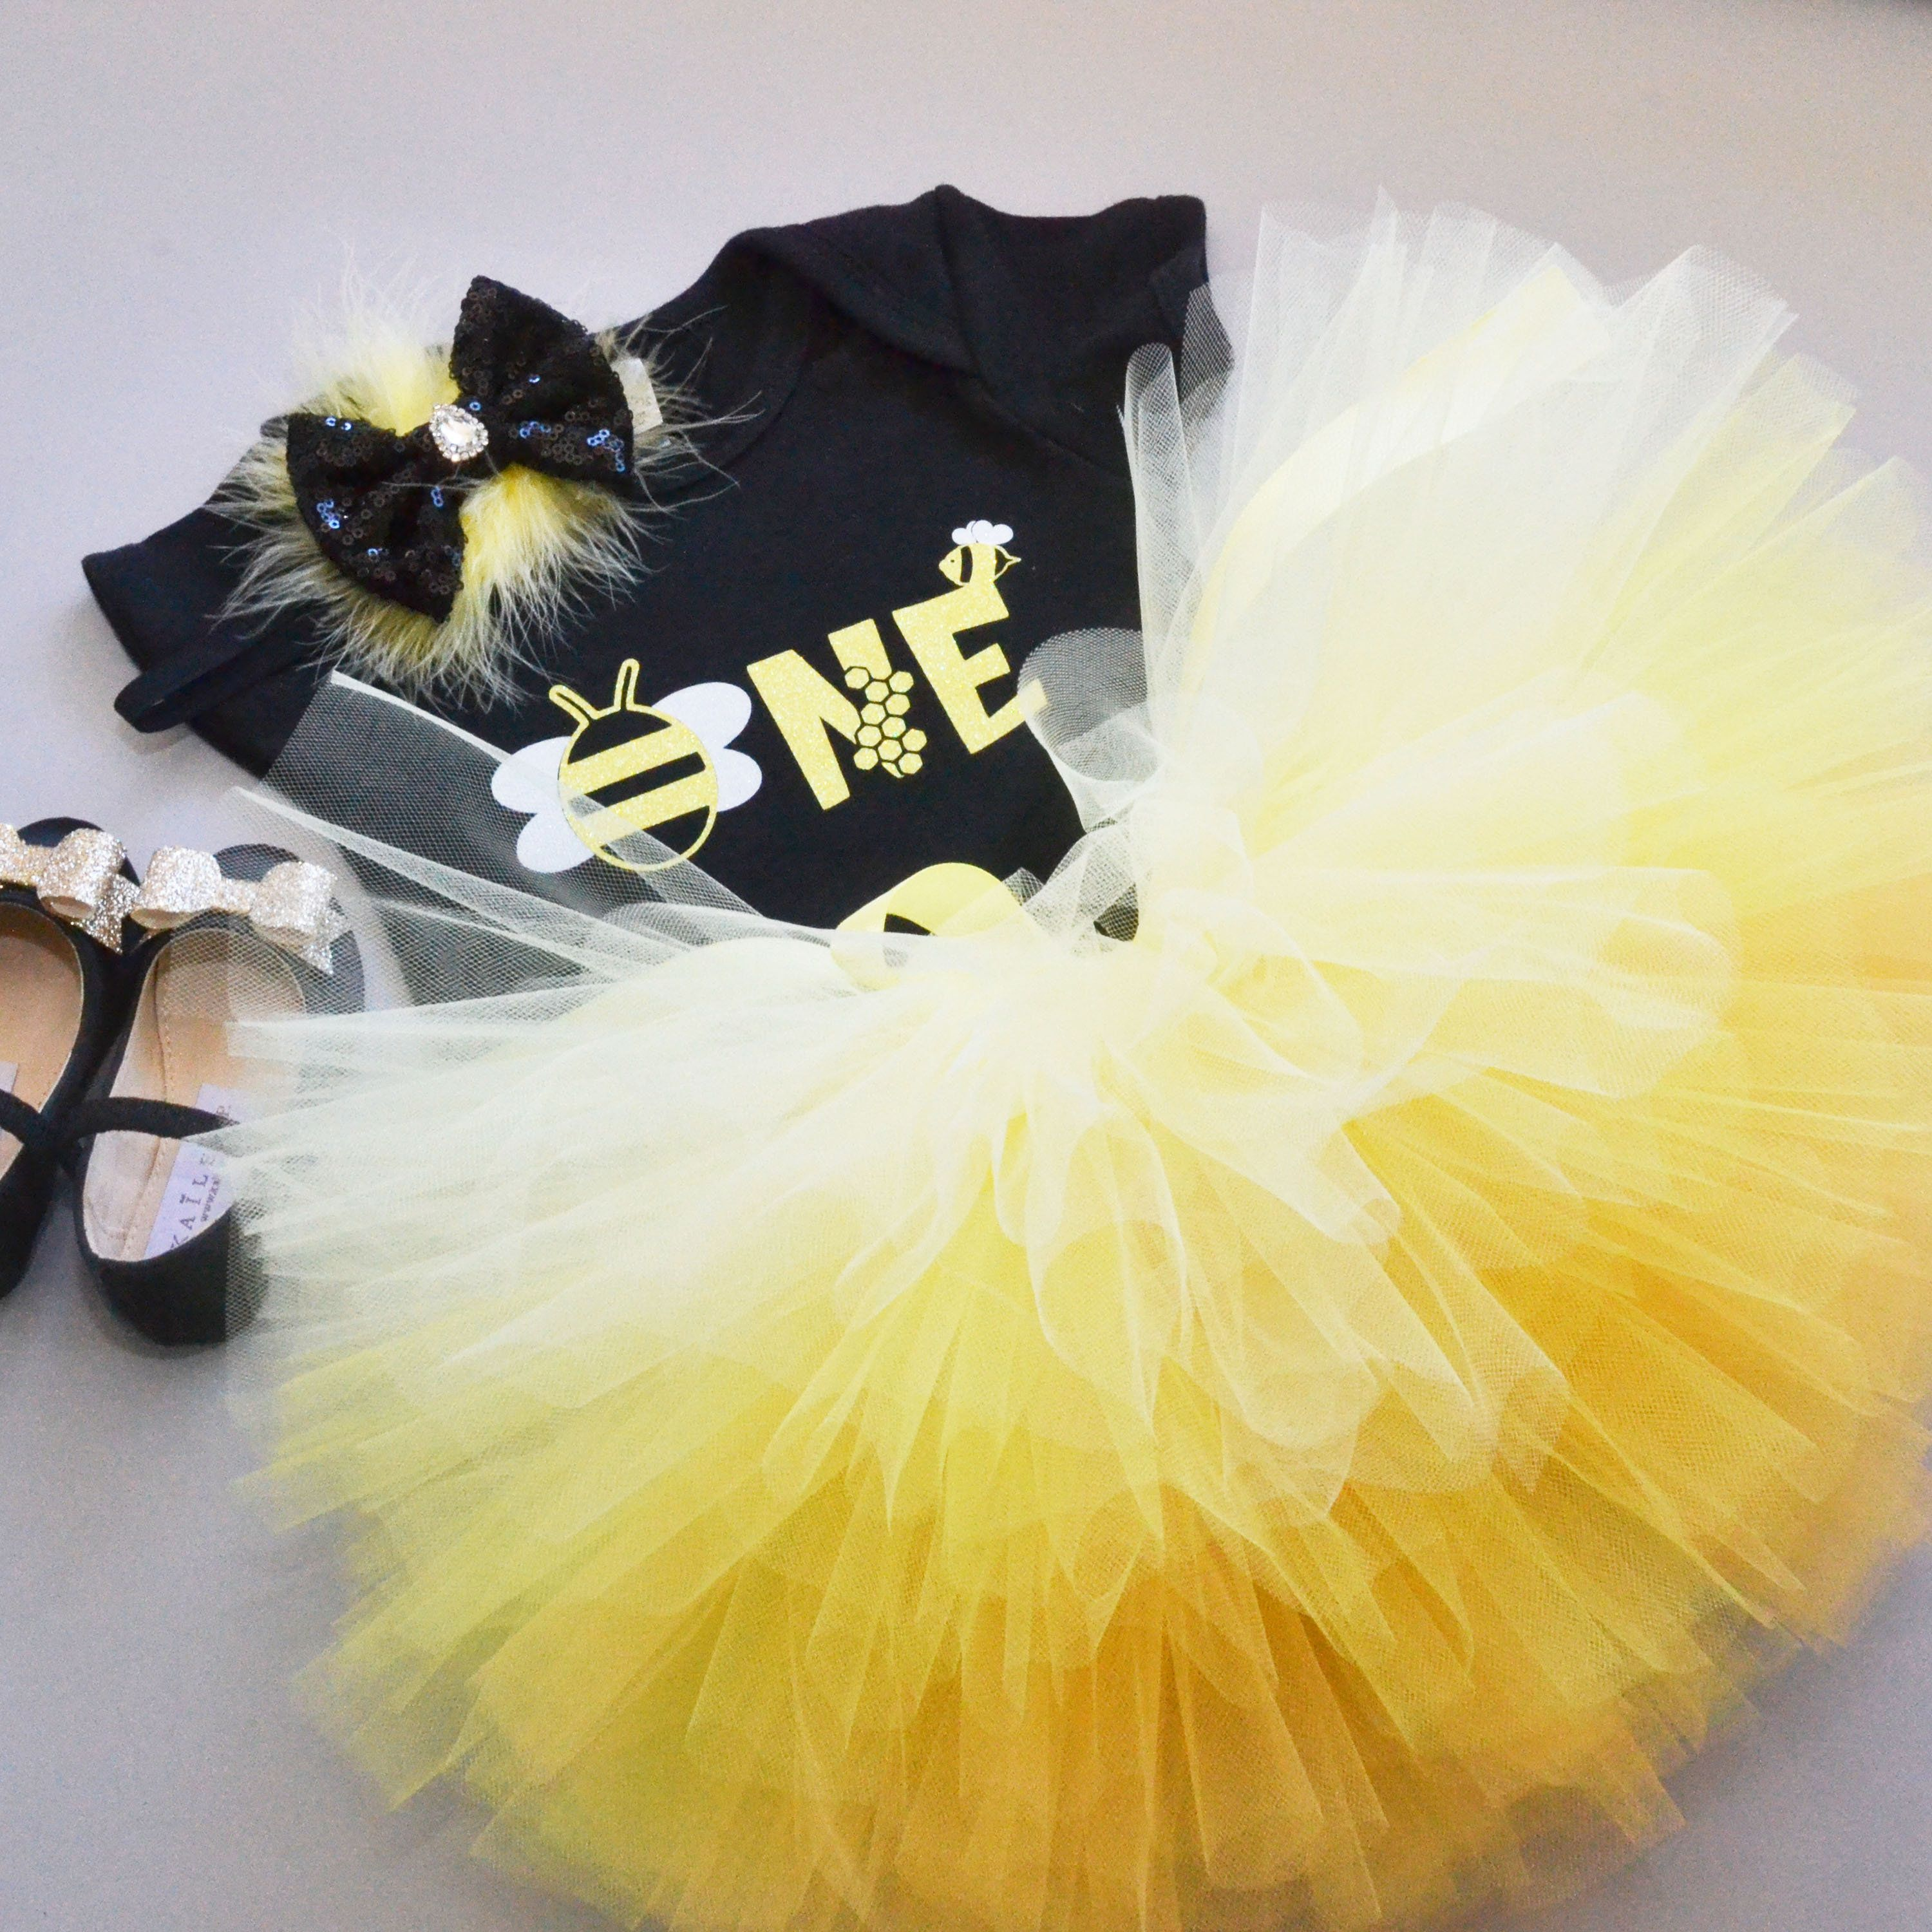 Bumble Bee Birthday Outfit Baby Girl 1st Birthday Outfit Little Hunny Party ANY AGE Light Yellow Gold Glitter